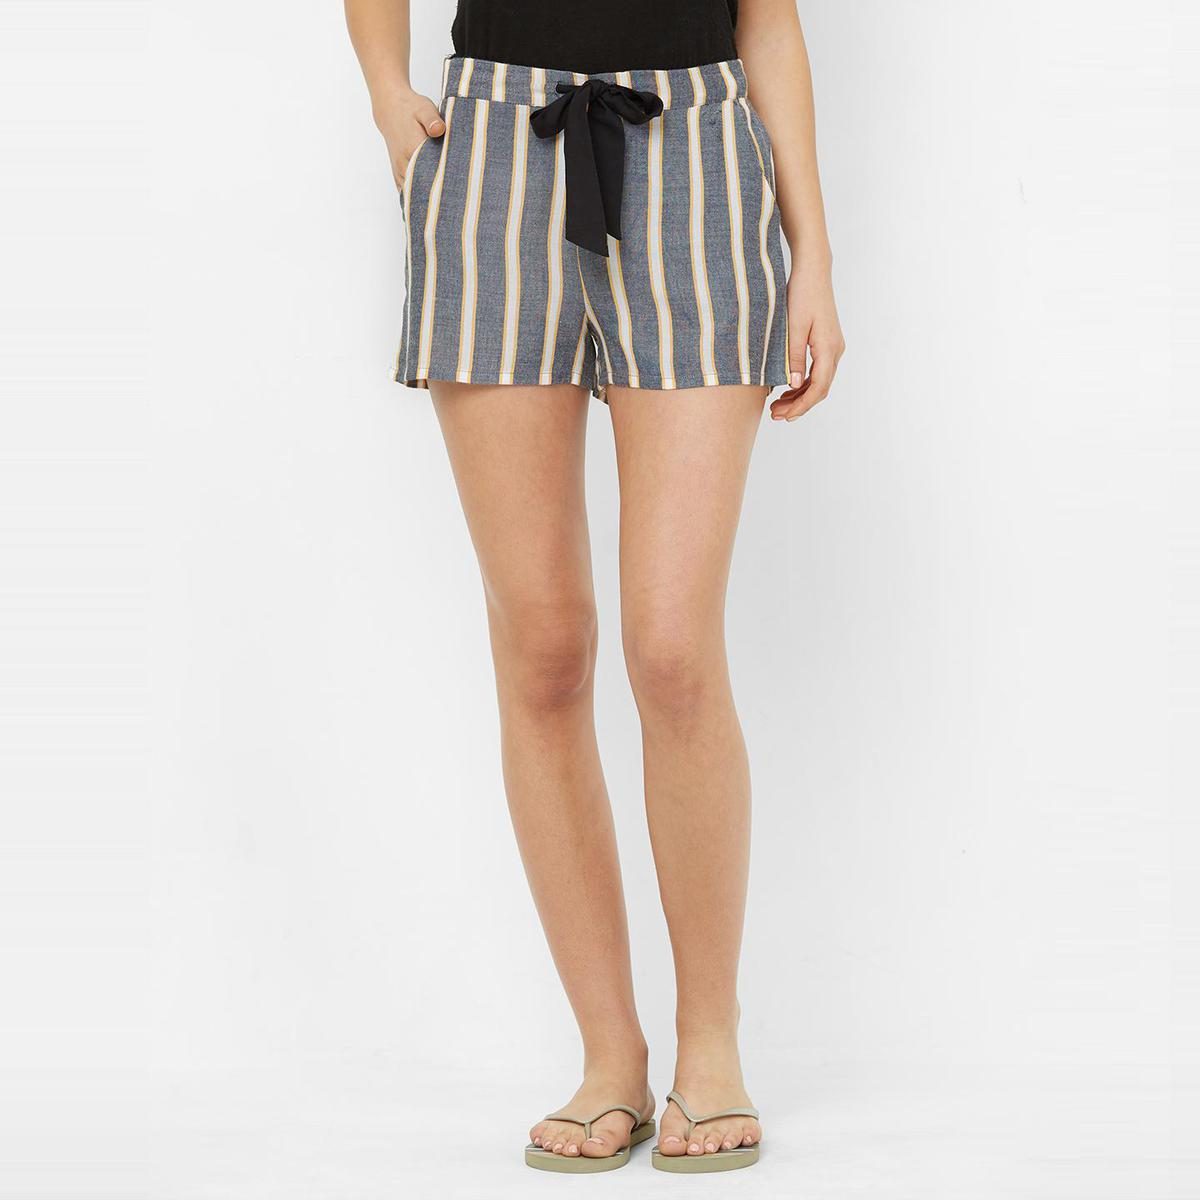 Mystere Paris - Charcoal  White Colored Classic Striped Rayon Lounge Shorts